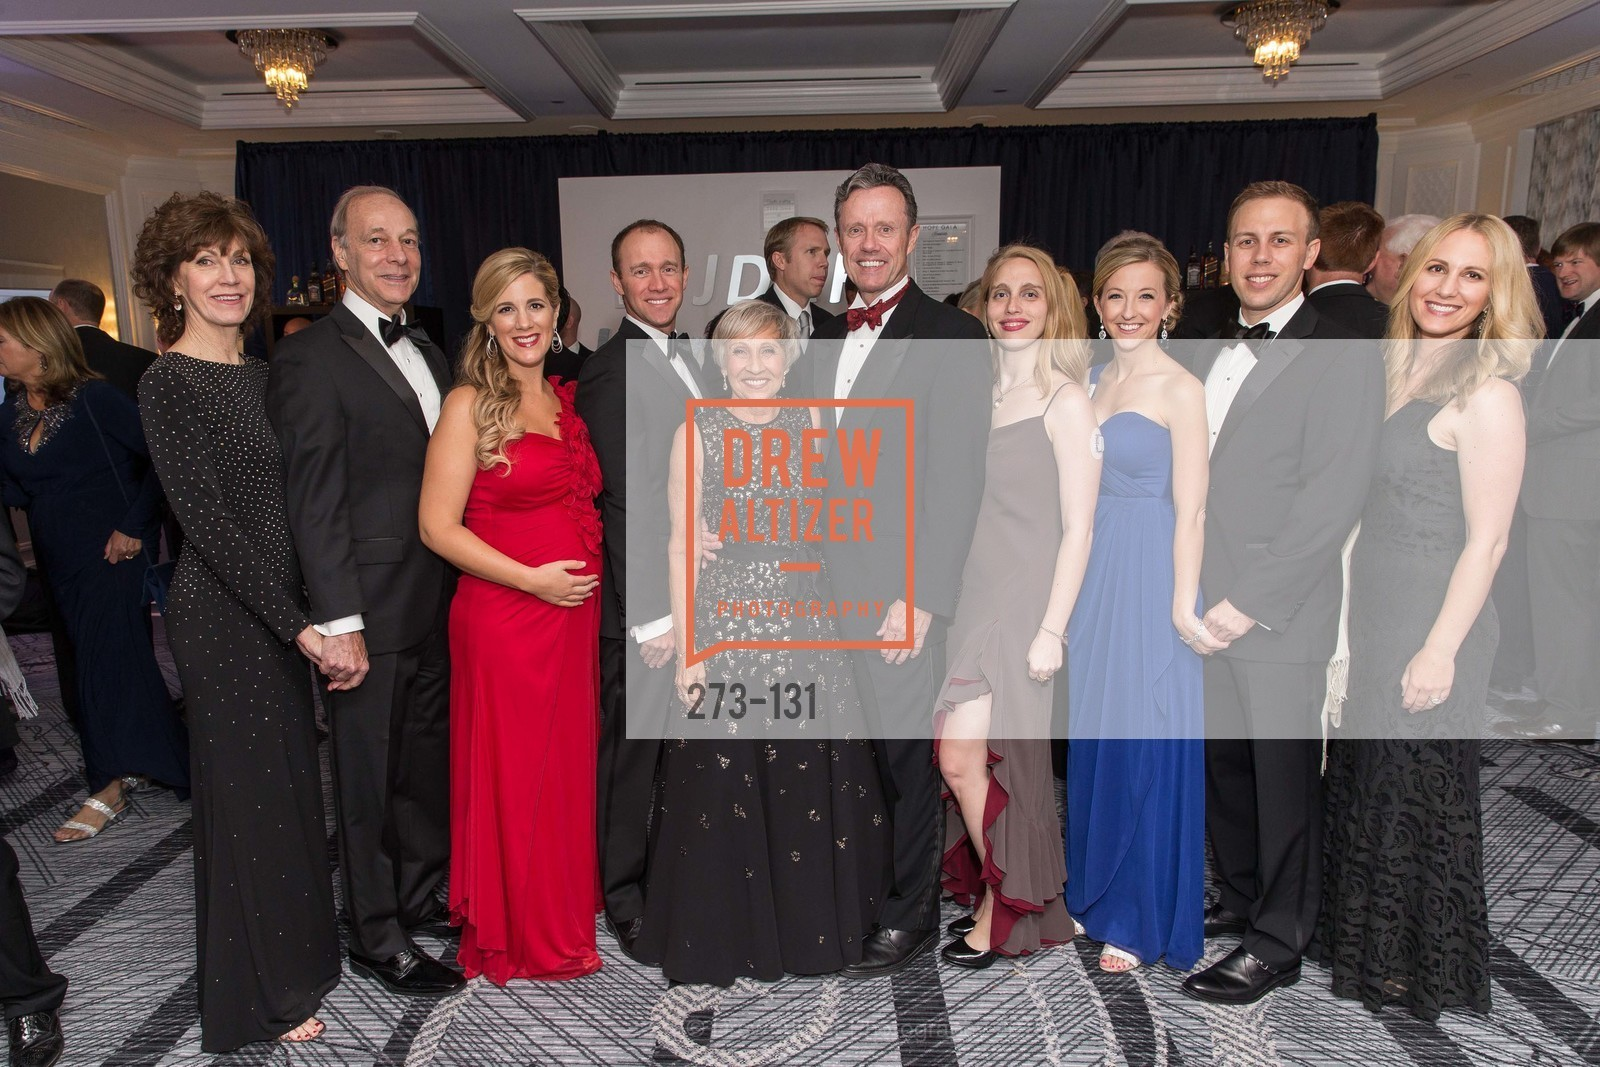 Lee Connor, Timothy Connor, Lauren Sagan, Trevor Sagan, Pam Sagan, Bill Sagan, Piper Sagan, Kristine Lefin, Whitney Sagan, Lindsey Hulse, JUVENILE DIABETES RESEARCH FOUNDATION  Hope Gala, The Ritz-Carlton, May 29th, 2015,Drew Altizer, Drew Altizer Photography, full-service agency, private events, San Francisco photographer, photographer california